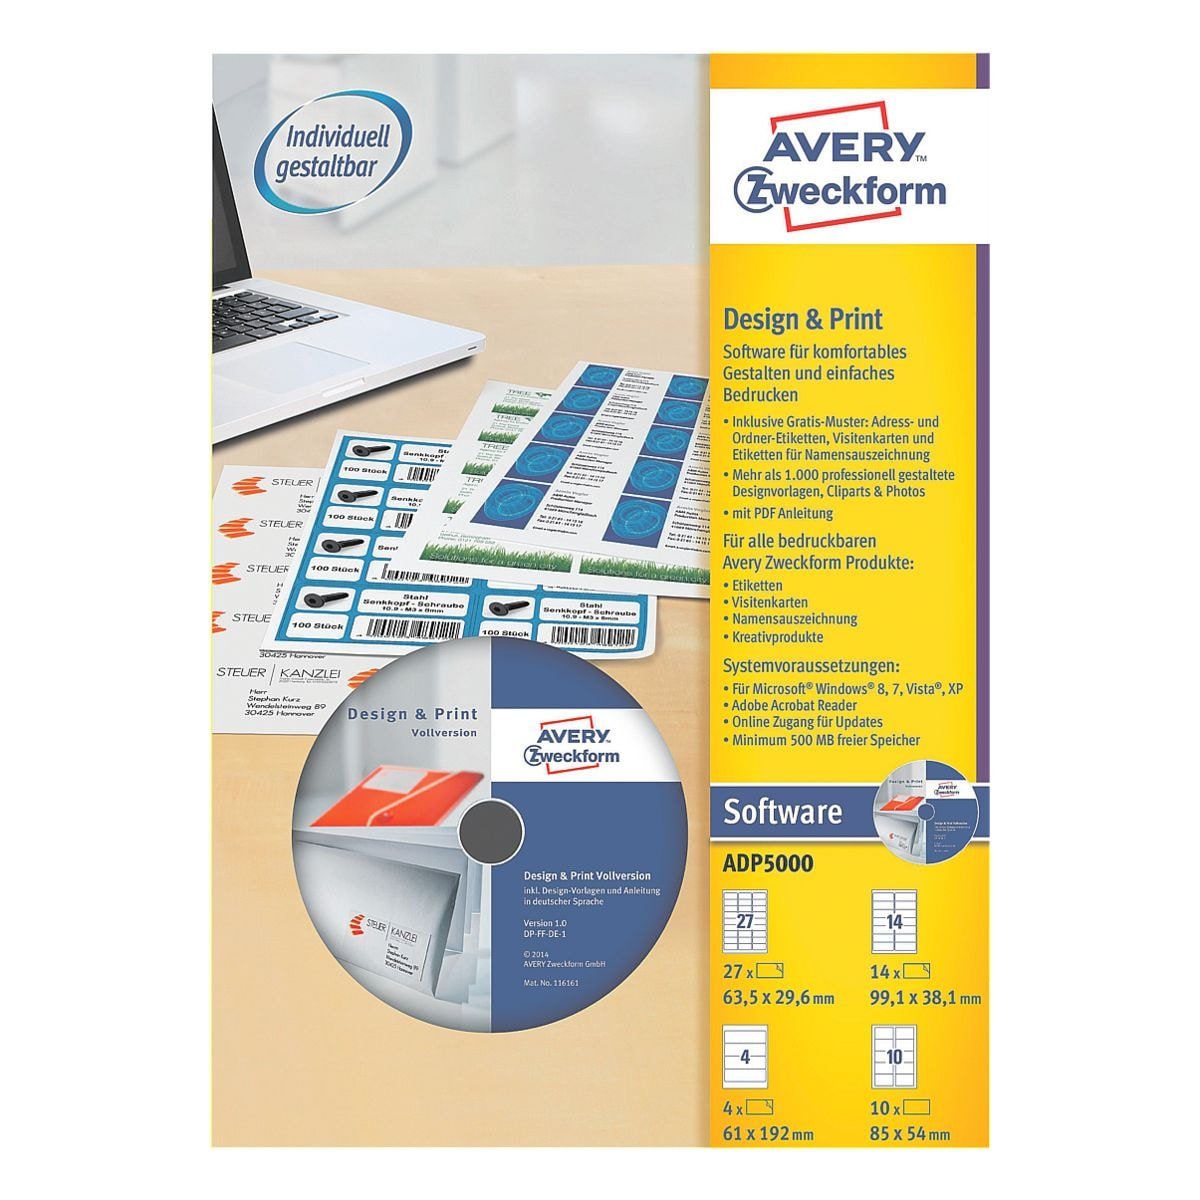 Avery zweckform software design print bei otto for Design and print avery